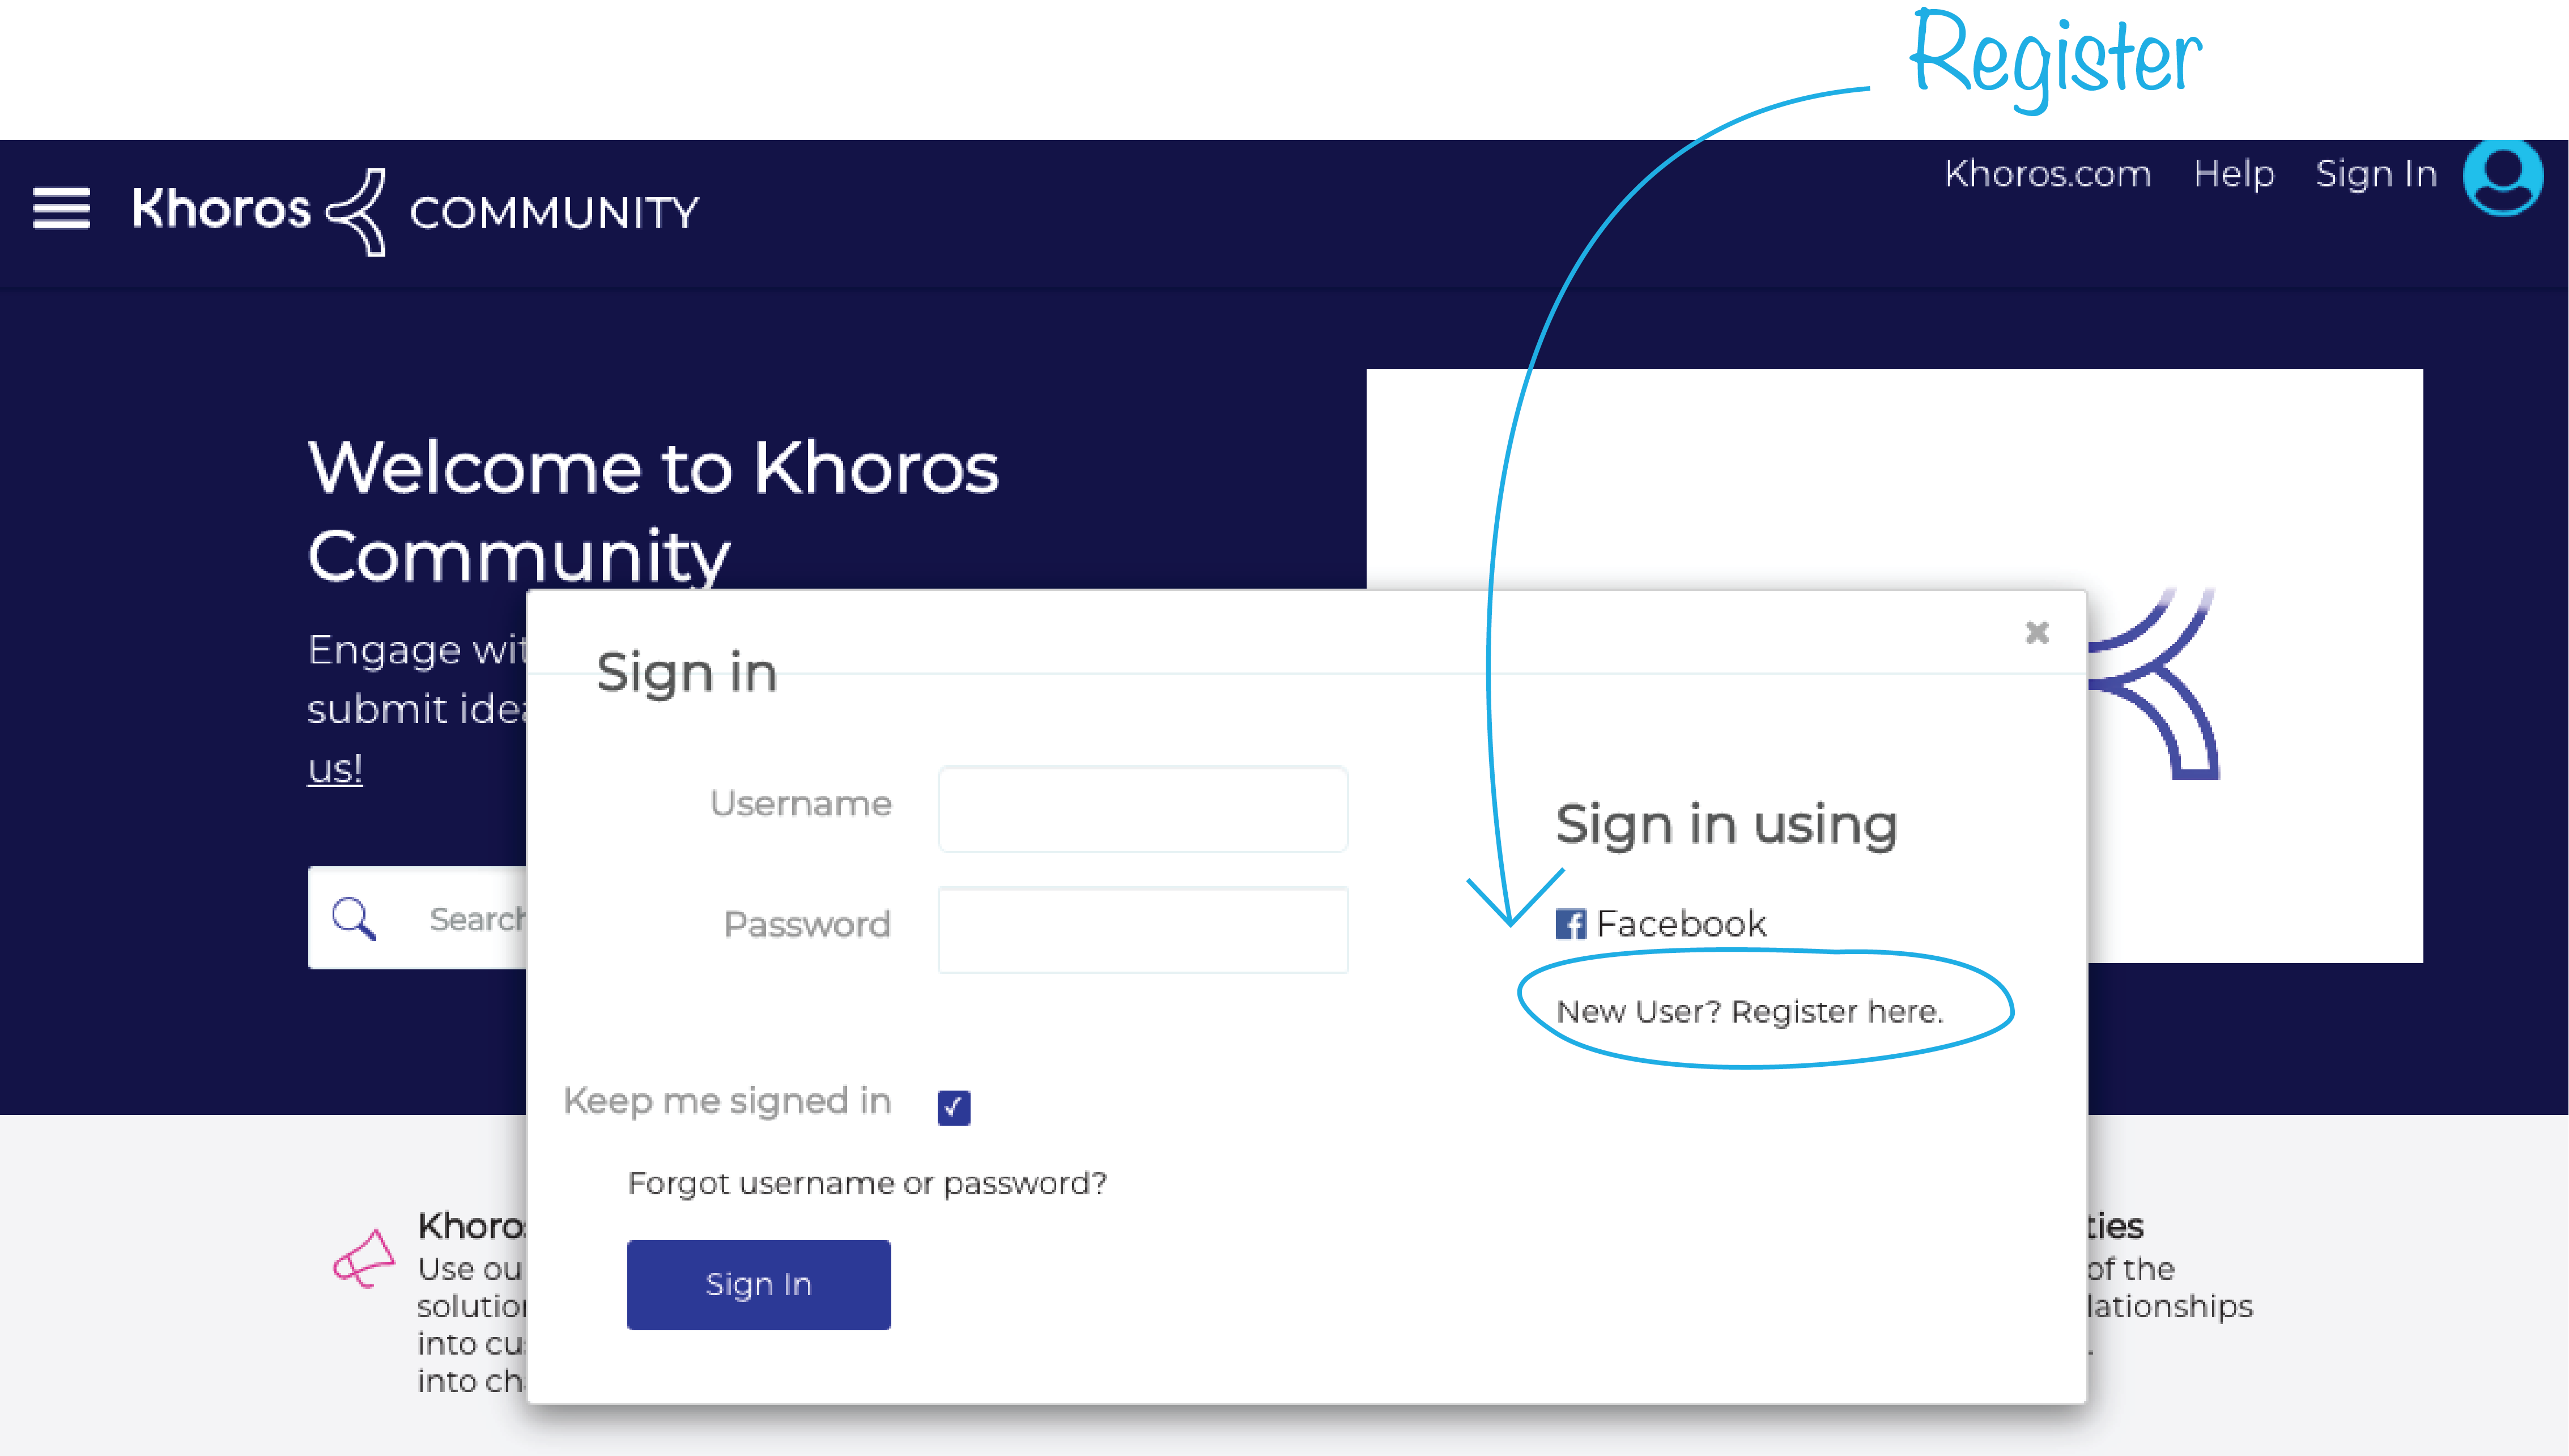 Register to join khoros online community